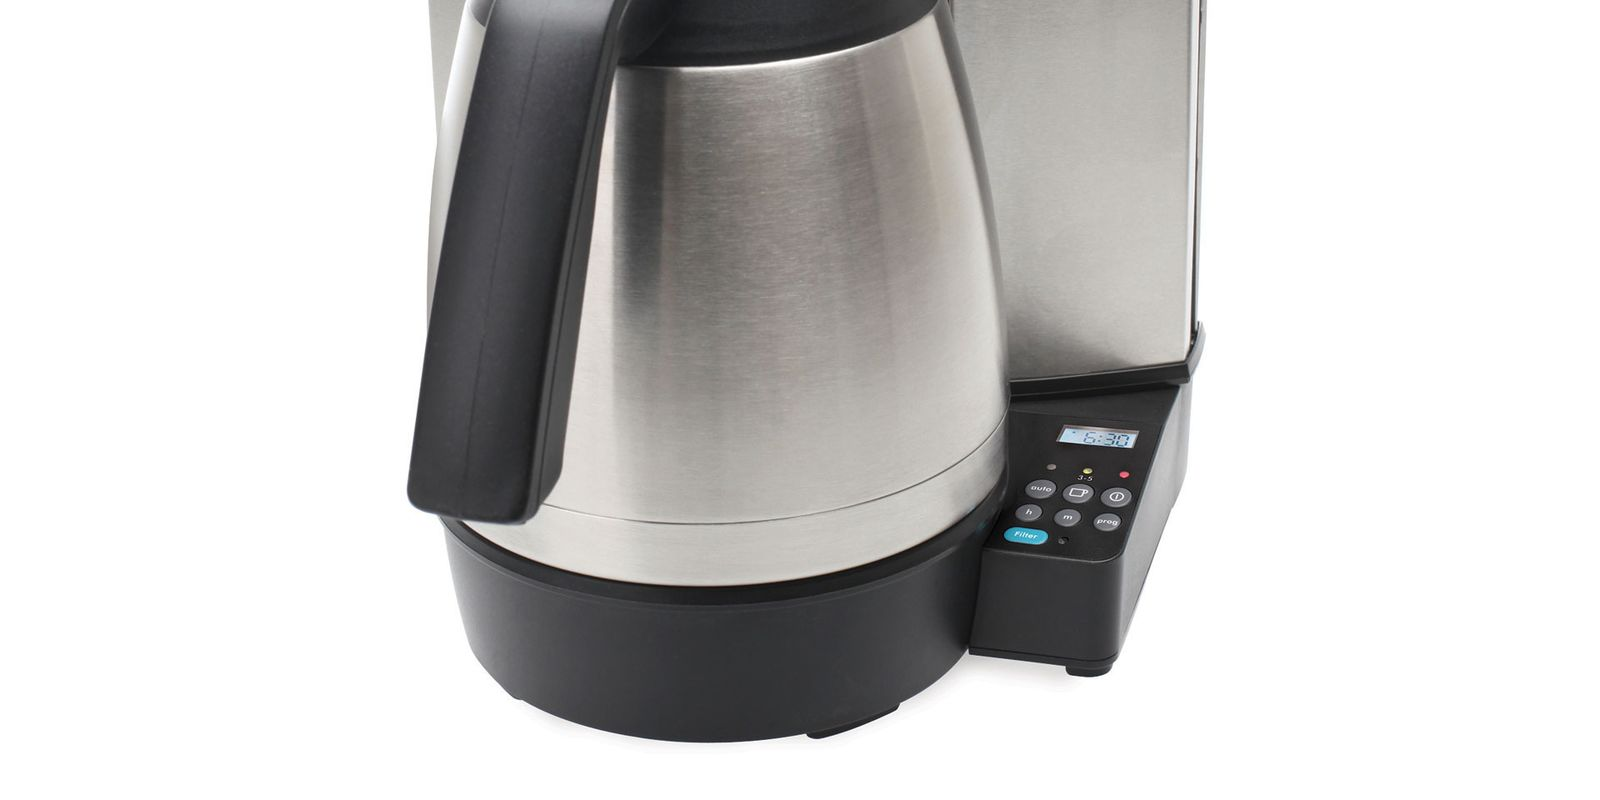 K Cup Coffee Maker Reviews 2012 : Capresso 10-Cup Programmable Coffee Maker With Thermal ...